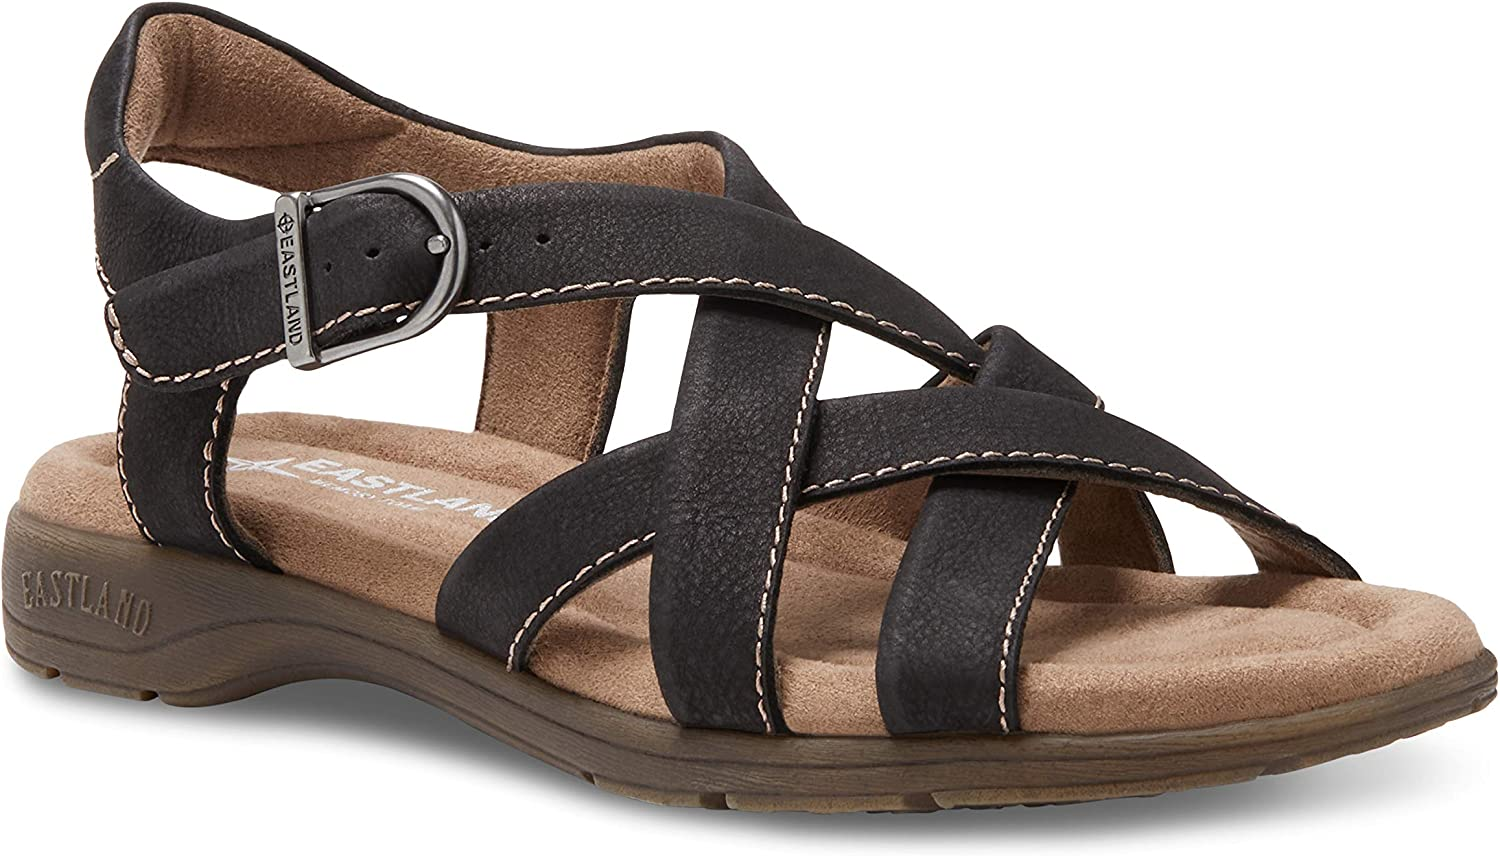 Eastland Women's Don't miss the campaign Back Sandal Strap Low price